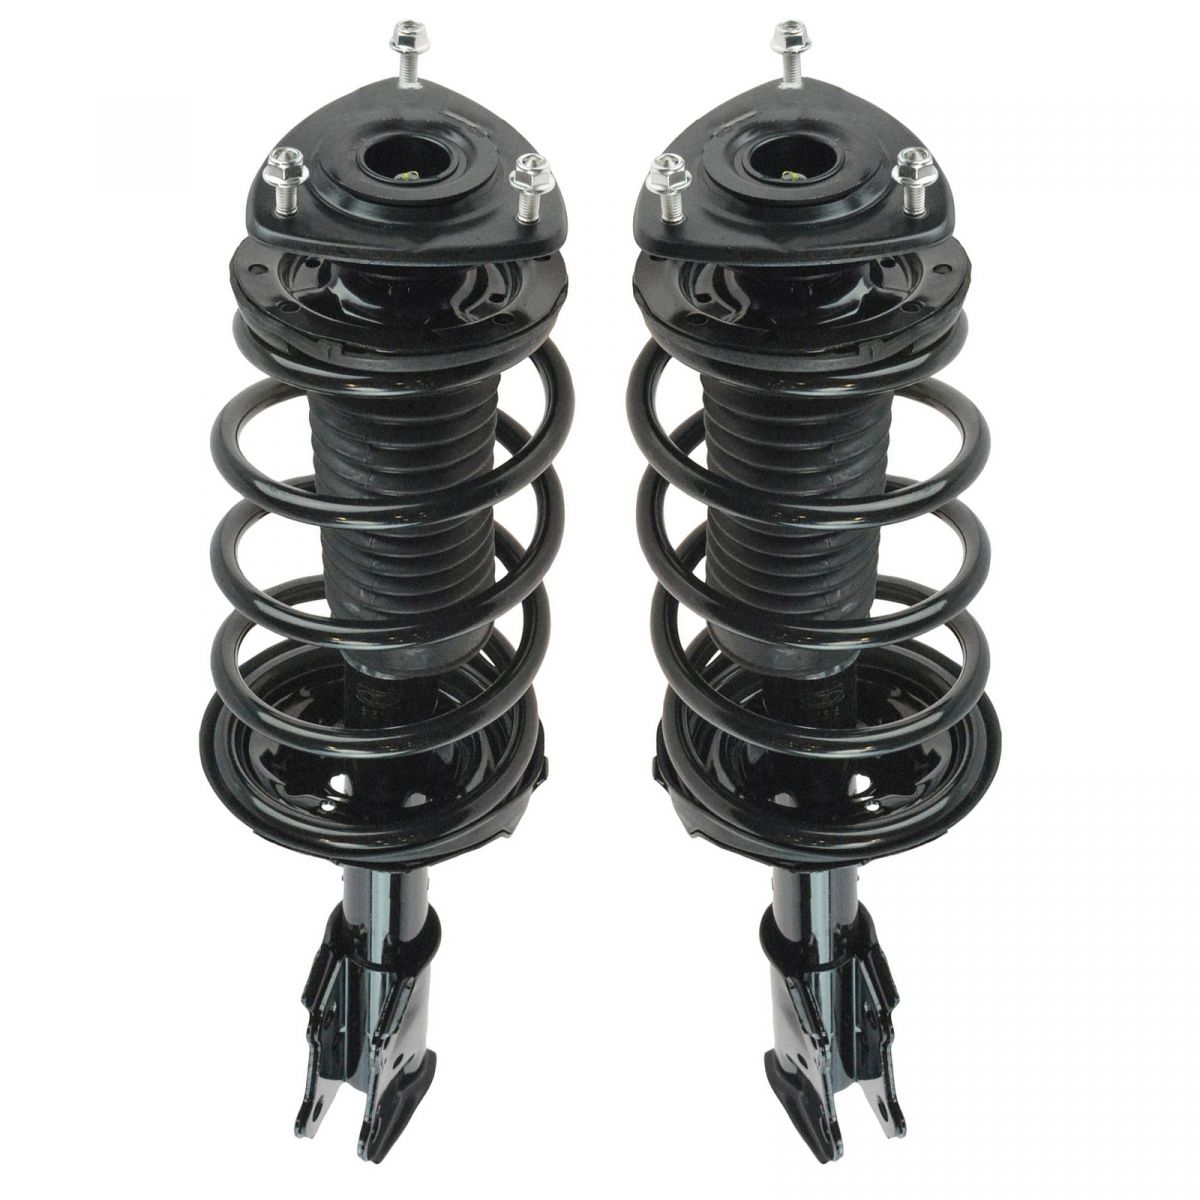 2006 for Acura MDX Front Premium Quality Suspension Strut and Coil Spring Assemblies One Year Warranty for Both Left and Right Sides